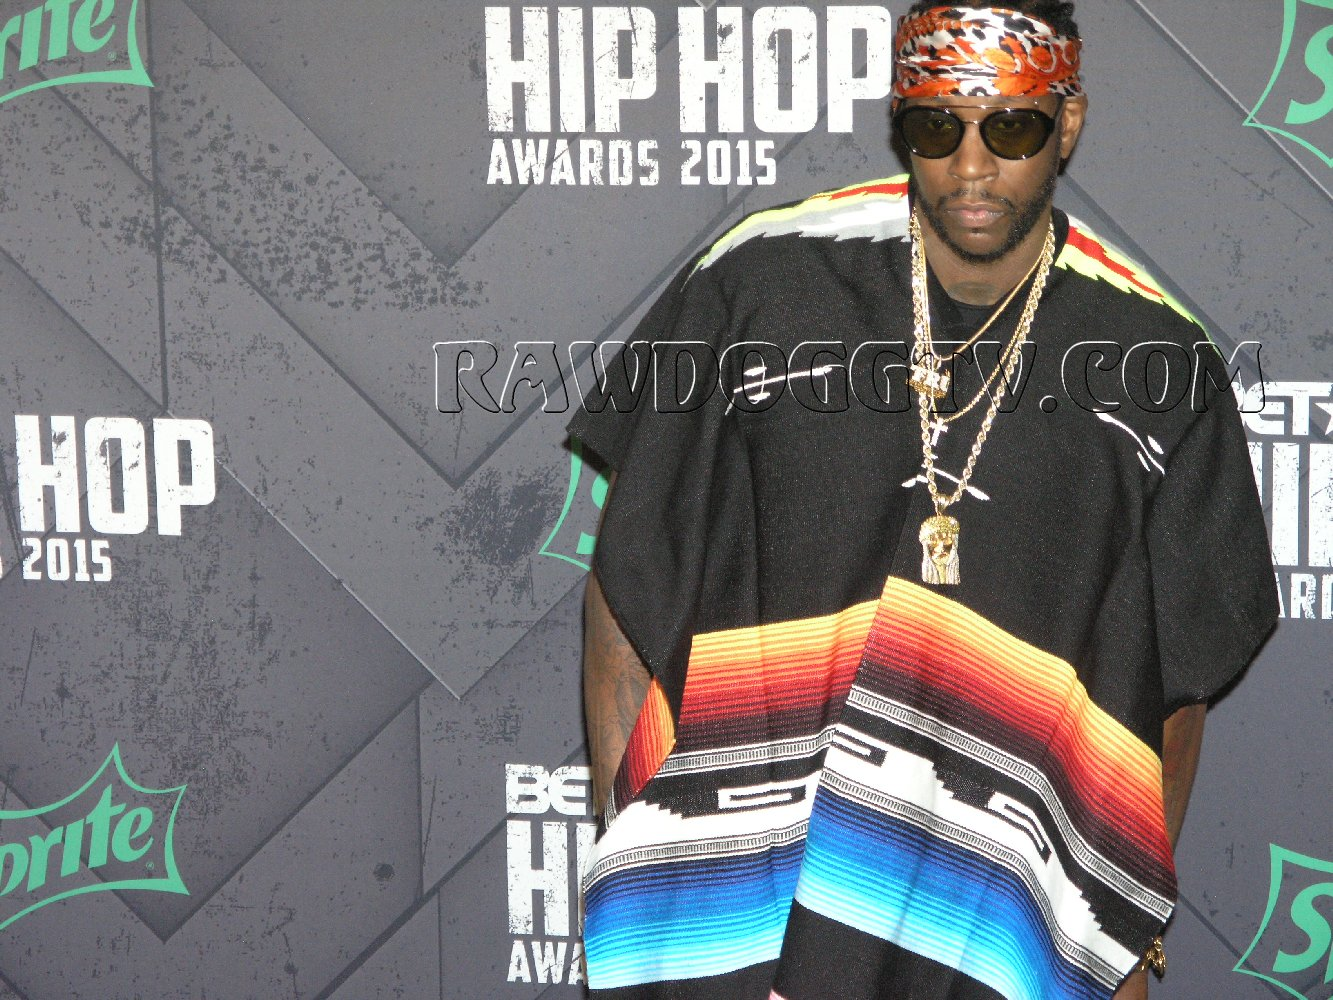 BET HIPHOP AWARDS 2015 WINNERS FULLSHOW ONLINE (9)